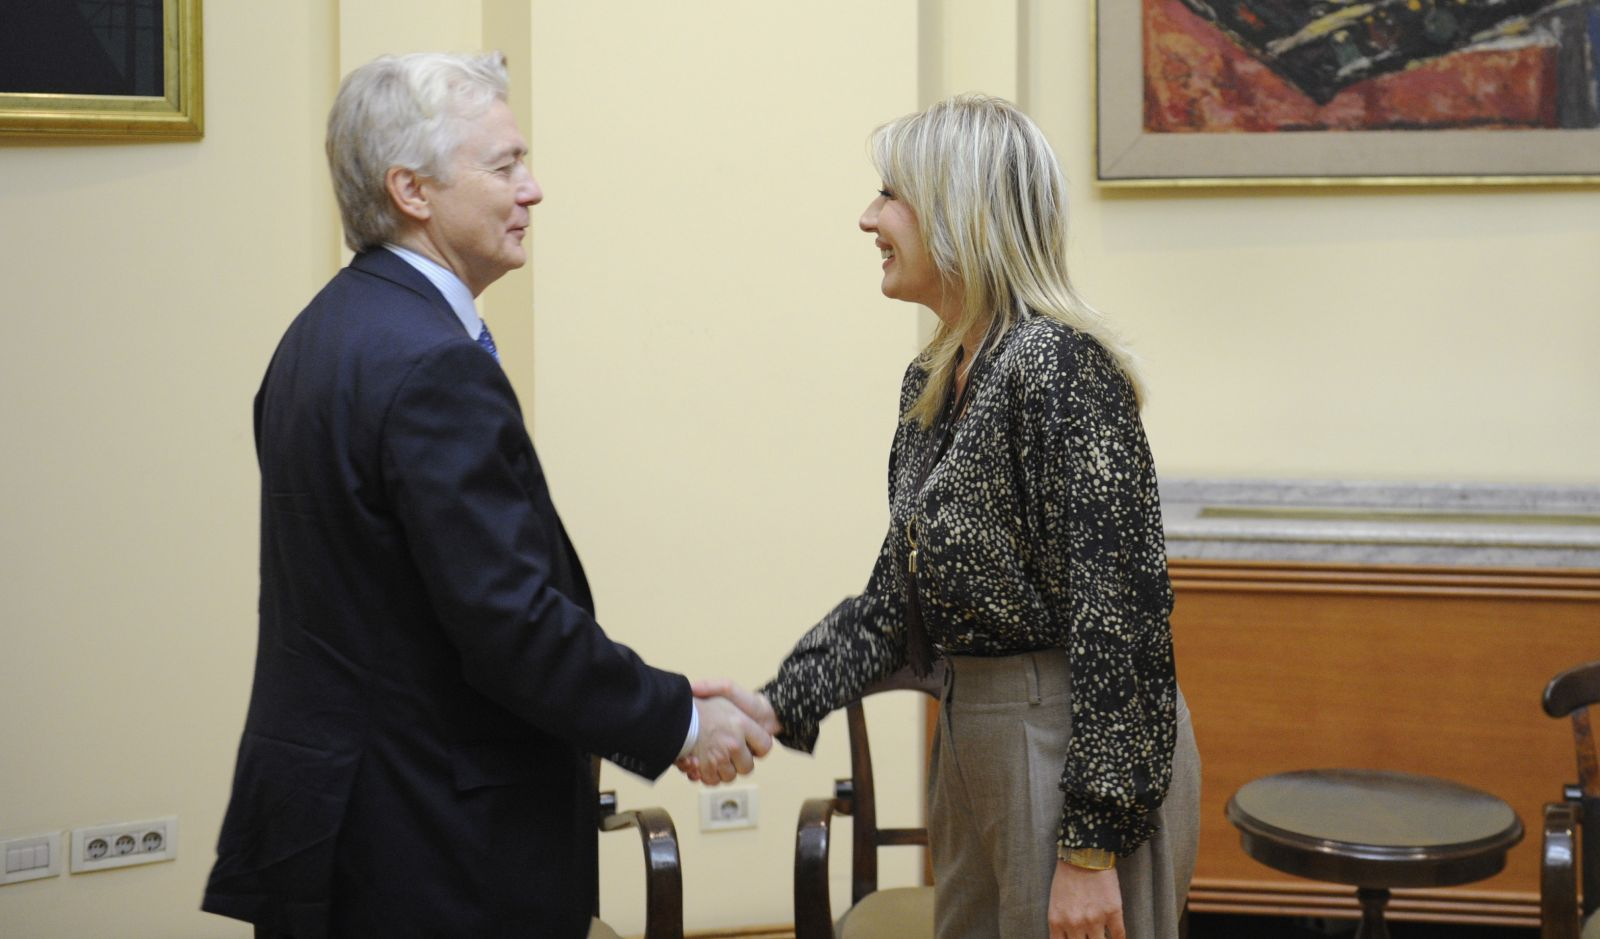 J. Joksimović and Gjelstad: Norway continues development cooperation with Serbia